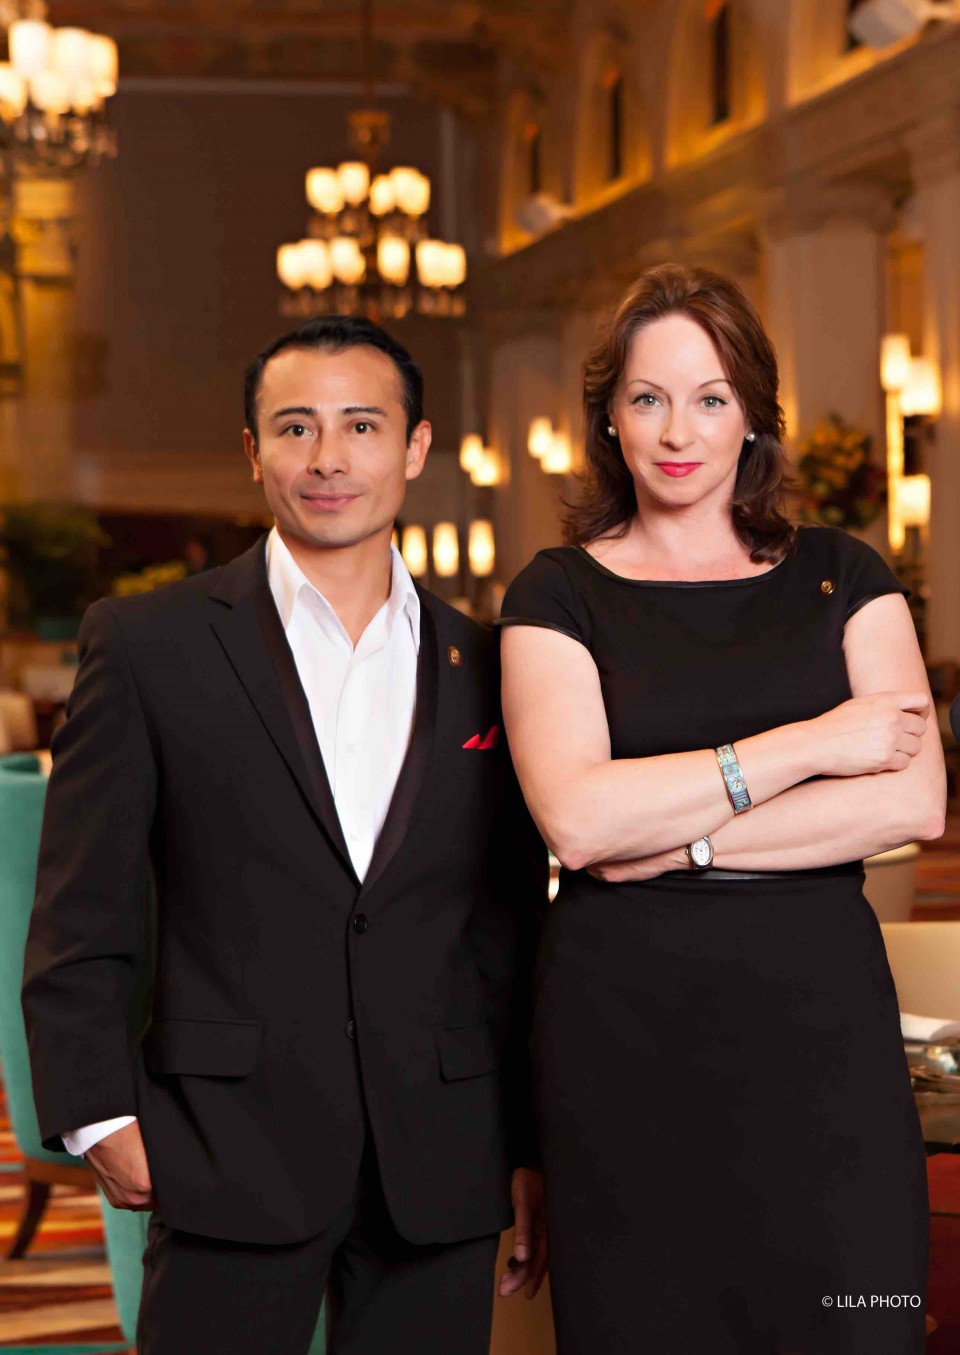 Master Sommeliers Juan Gomez and Virginia Philip select the wines for eight venues at The Breakers resort in Florida.